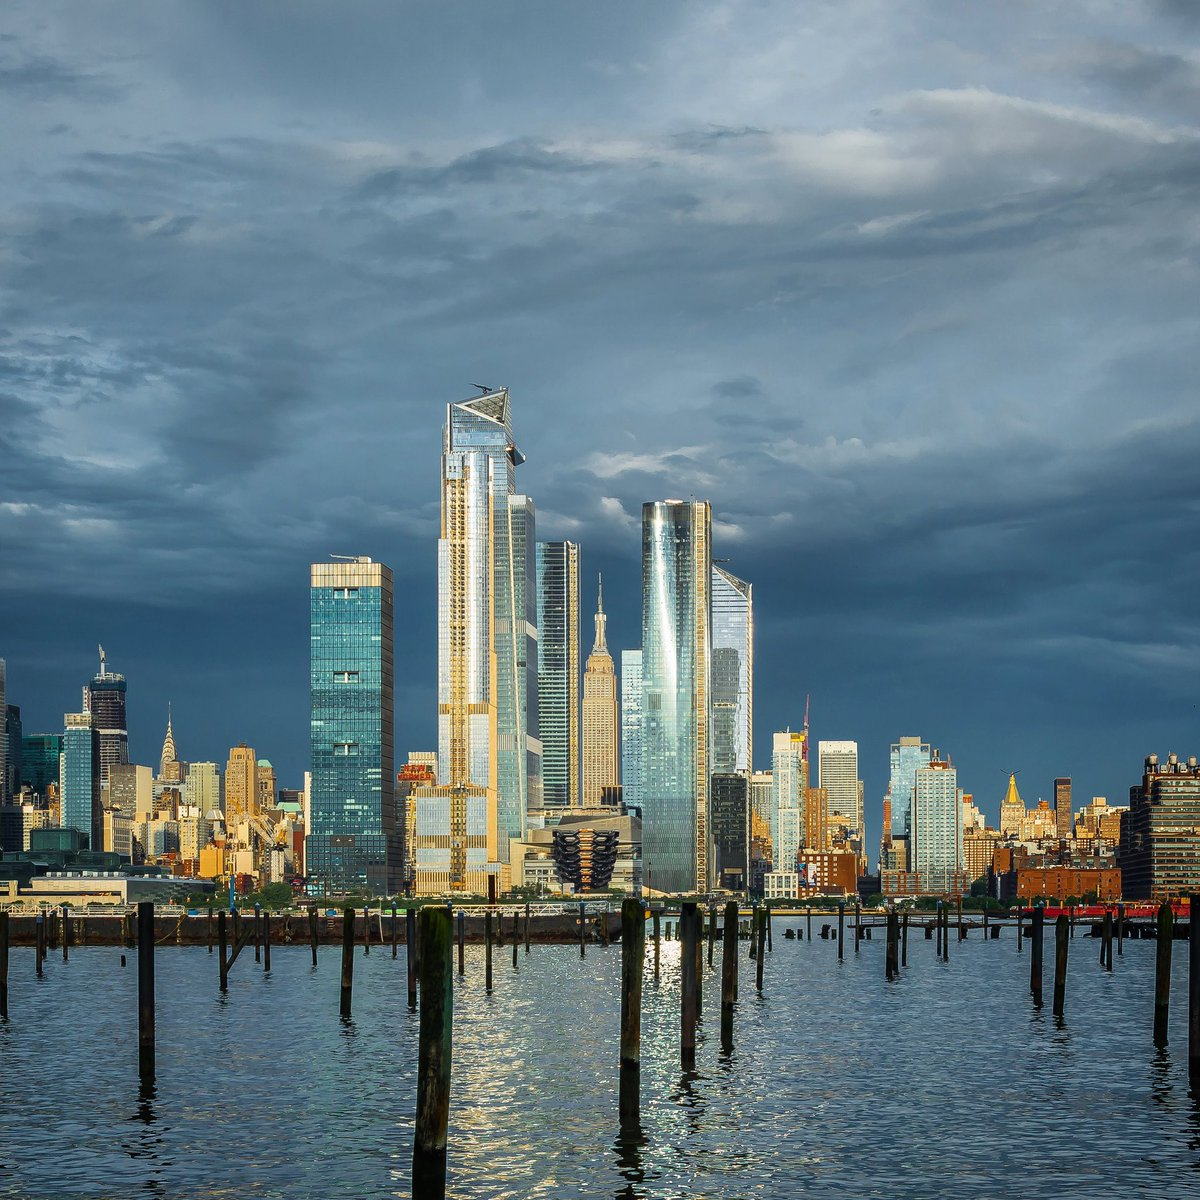 Stormy sky above Manhattan. View of the Empire State Building and the Hudson Yards across the Hudson River from Lincoln Harbor in Weehawken, New Jersey. <br>http://pic.twitter.com/KJ40d17xuG